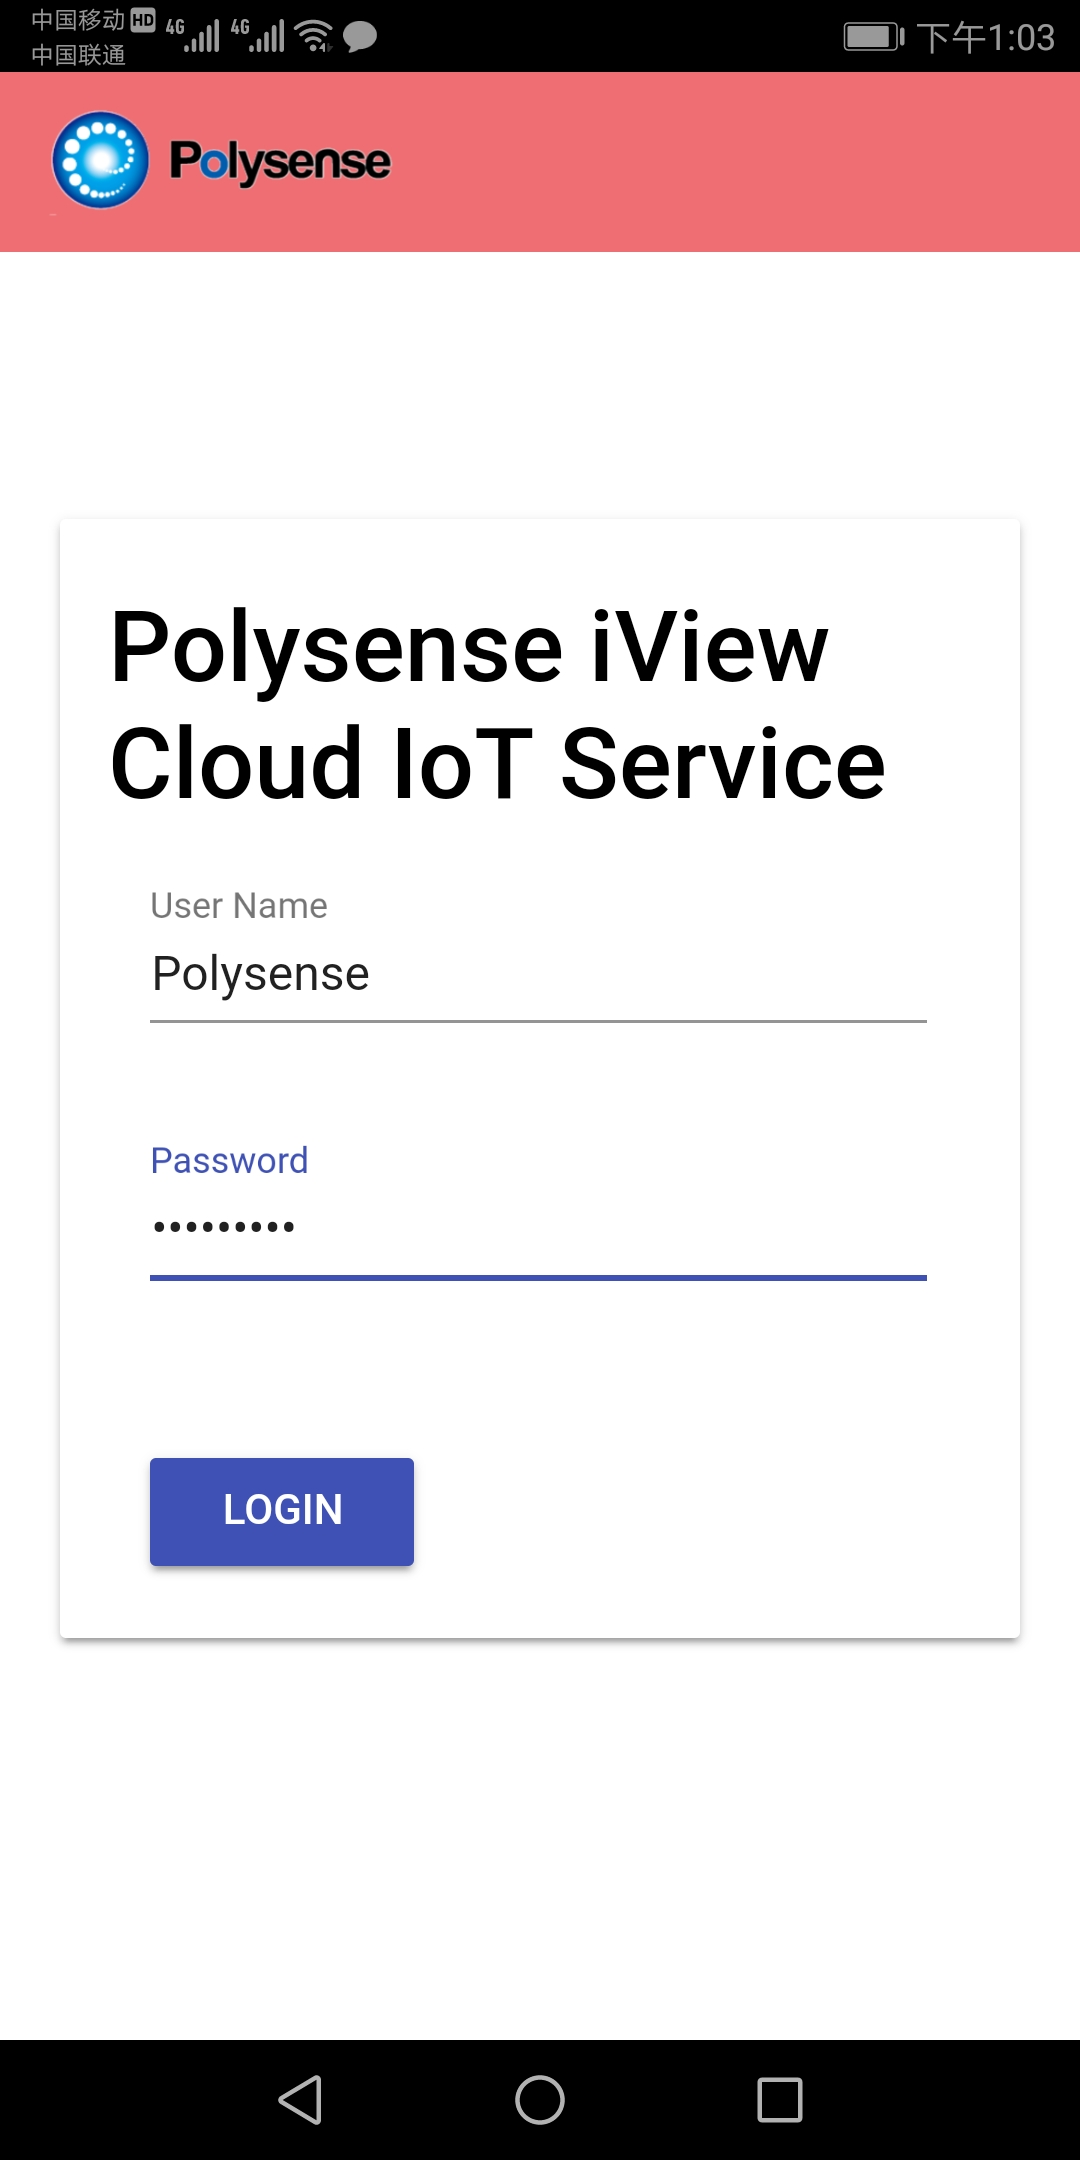 Polysense iView Platform For IoT networks, devices and big data